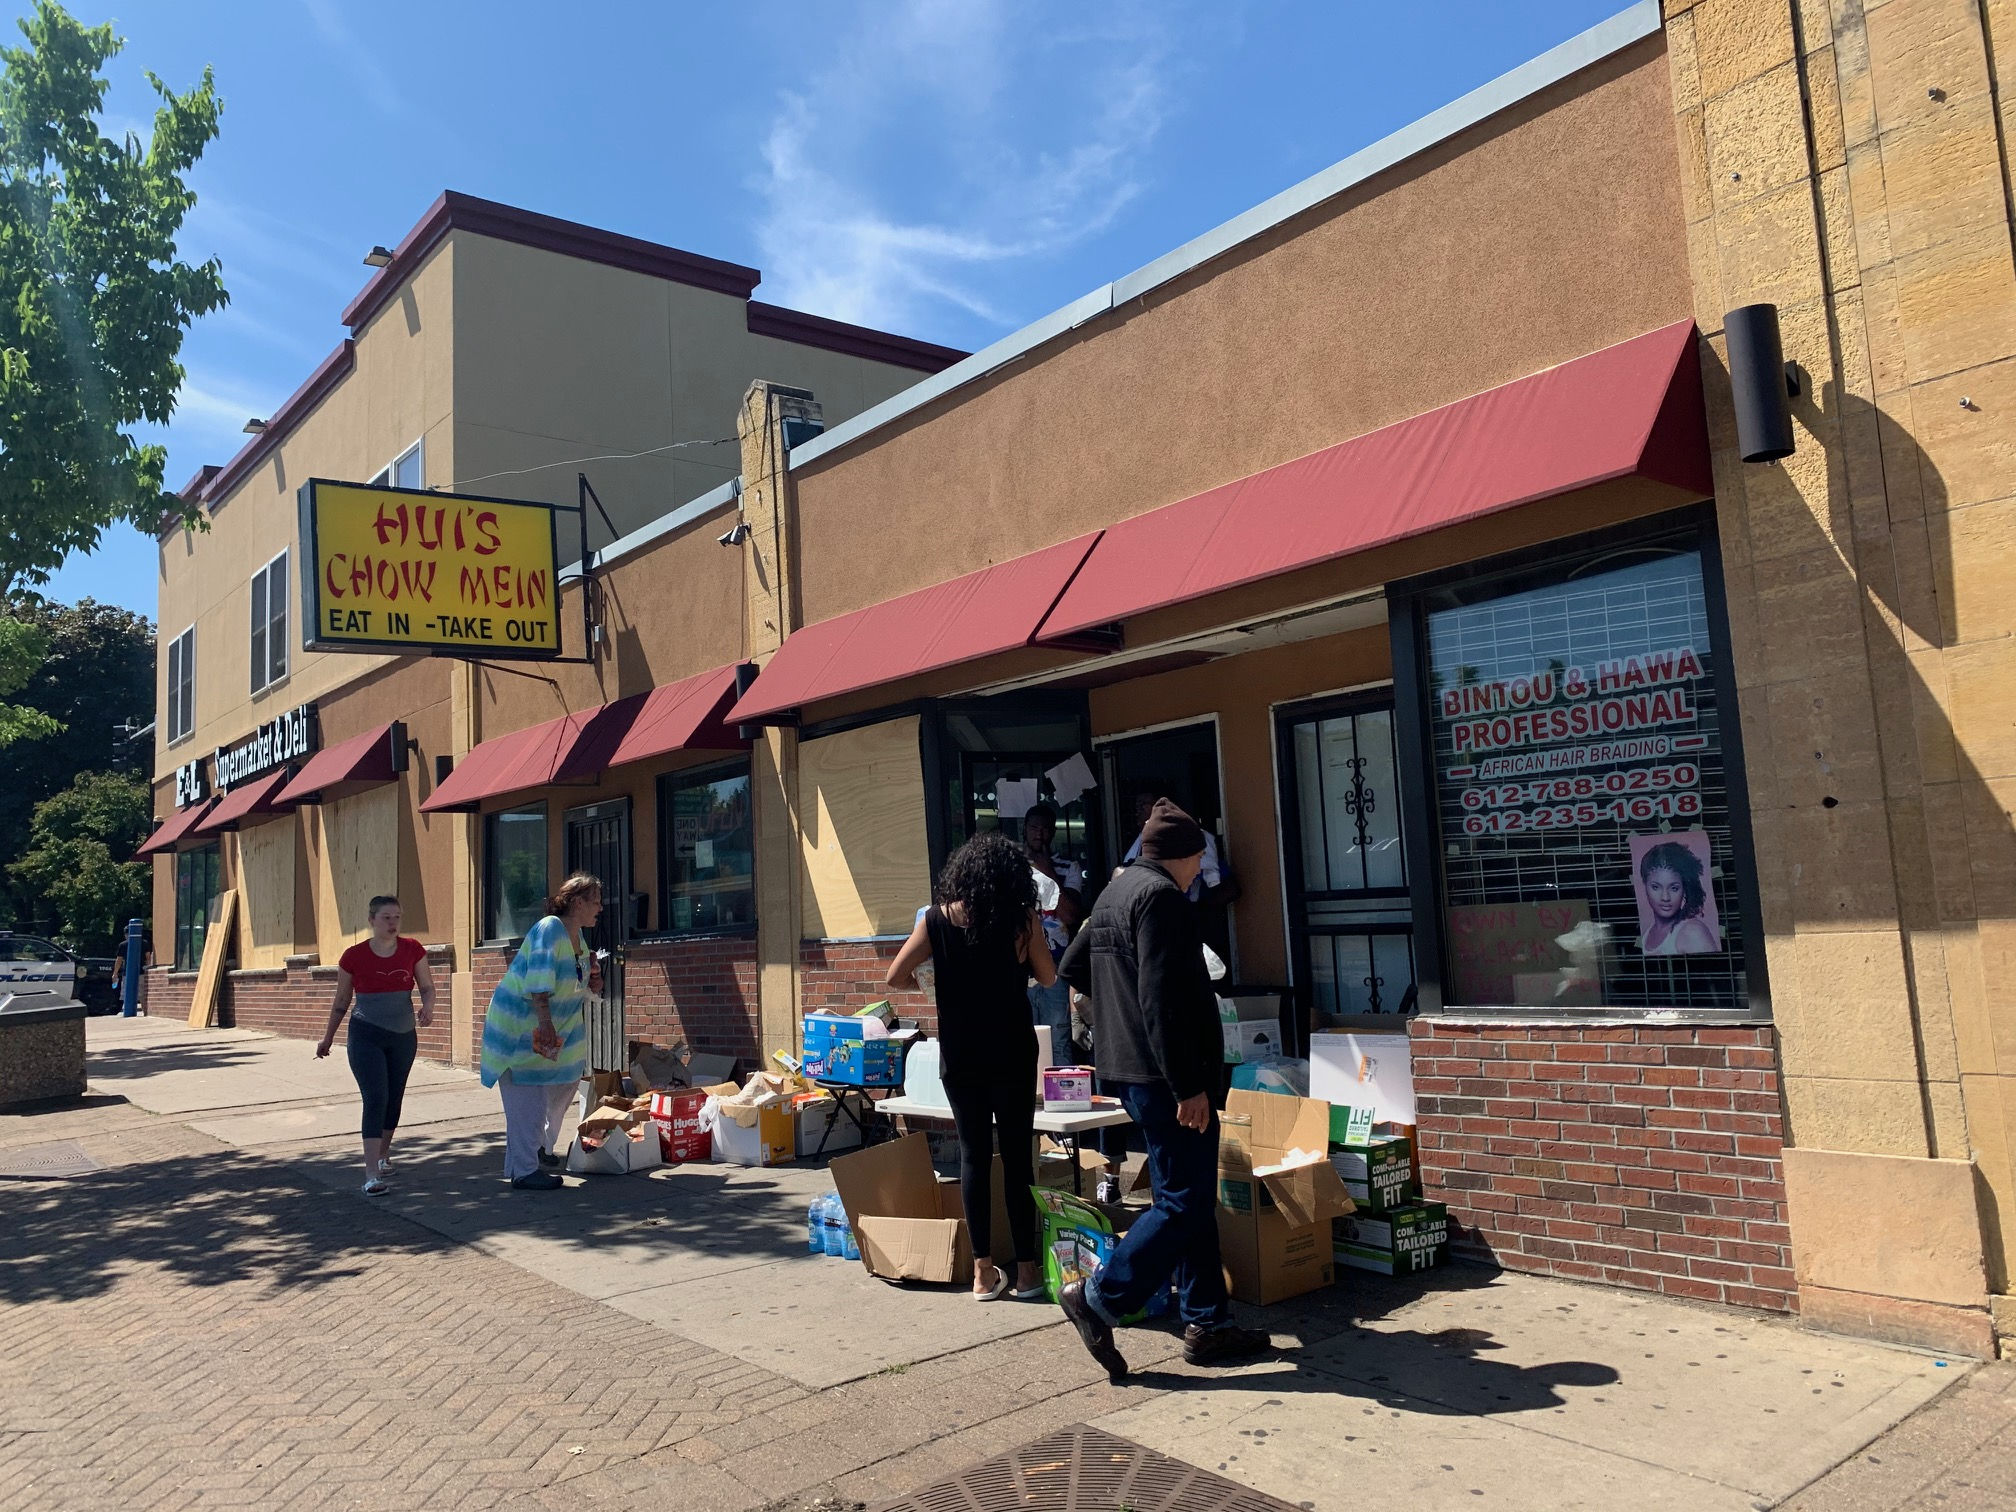 Barbers and volunteers give away donated groceries and essentials in front of FAME Hair Studio. Groceries are arranged haphazardly on the sidewalk while people peruse items.